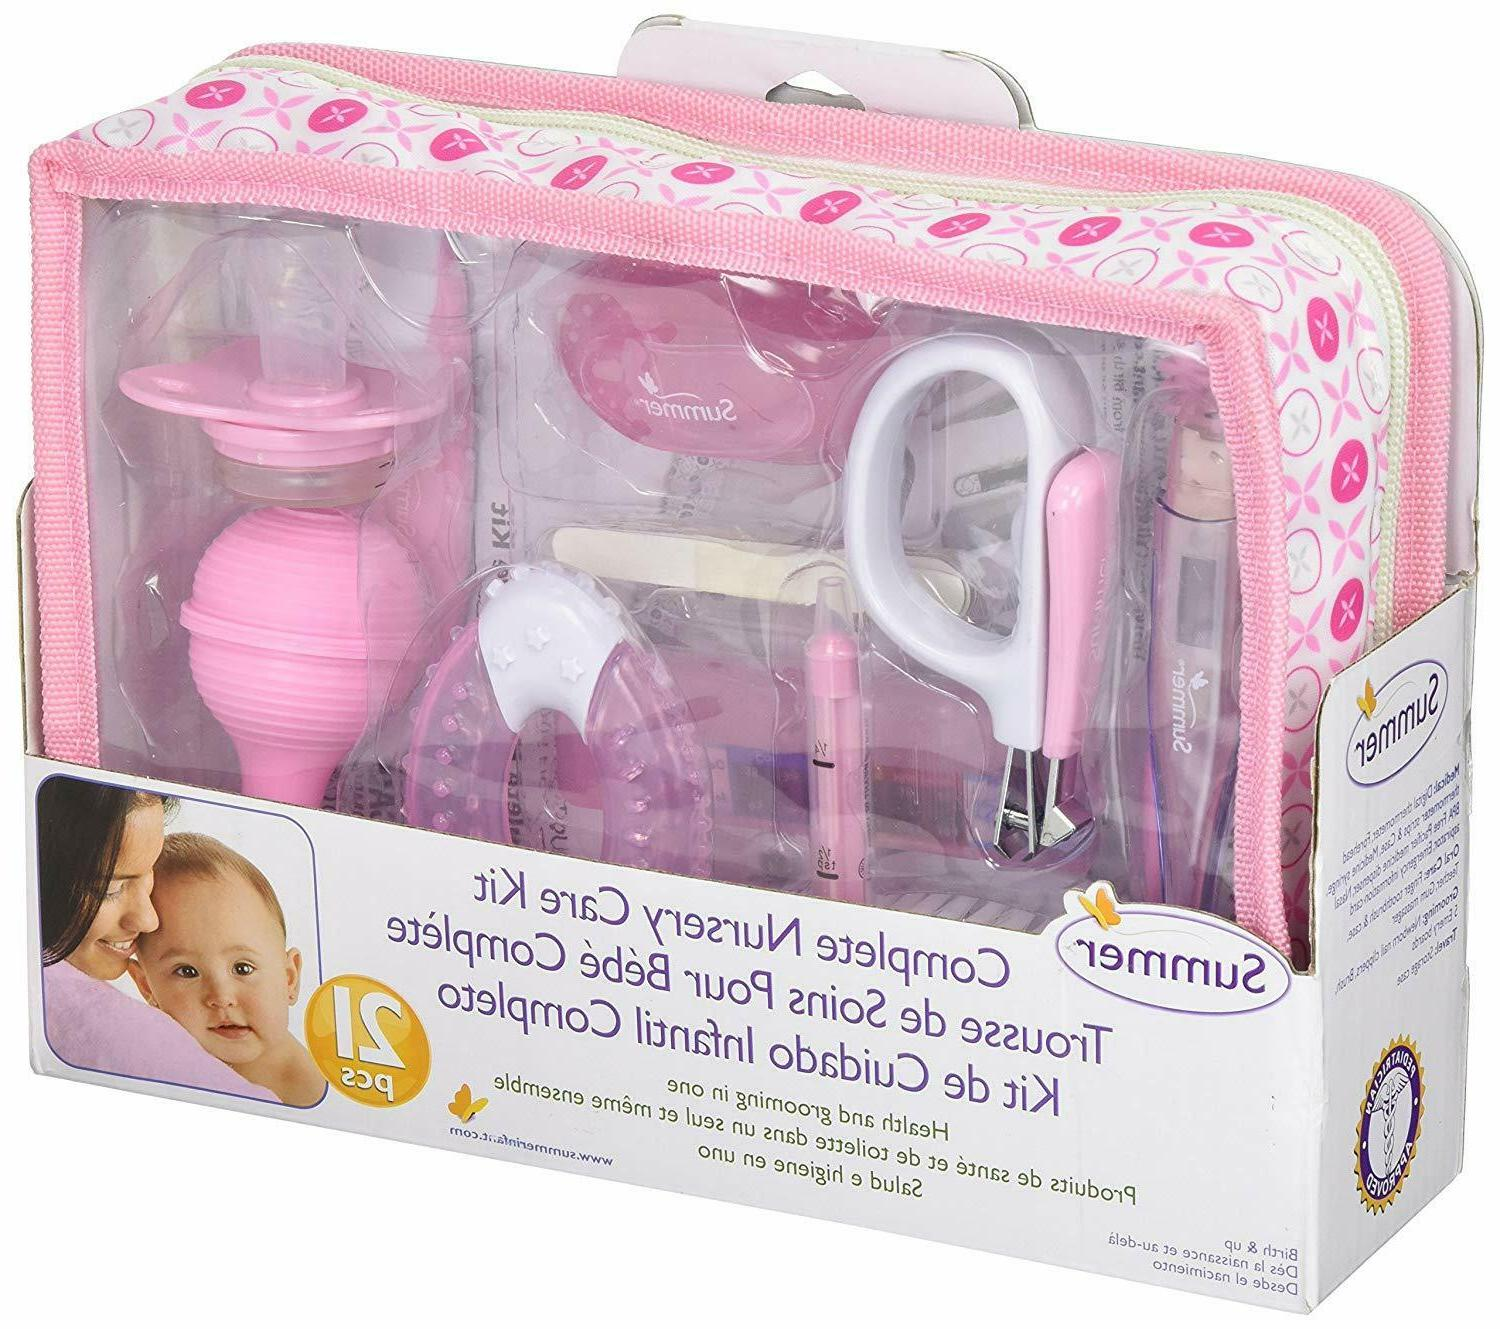 Baby Health Care Grooming Kit for Girls Storage Case Baby Es